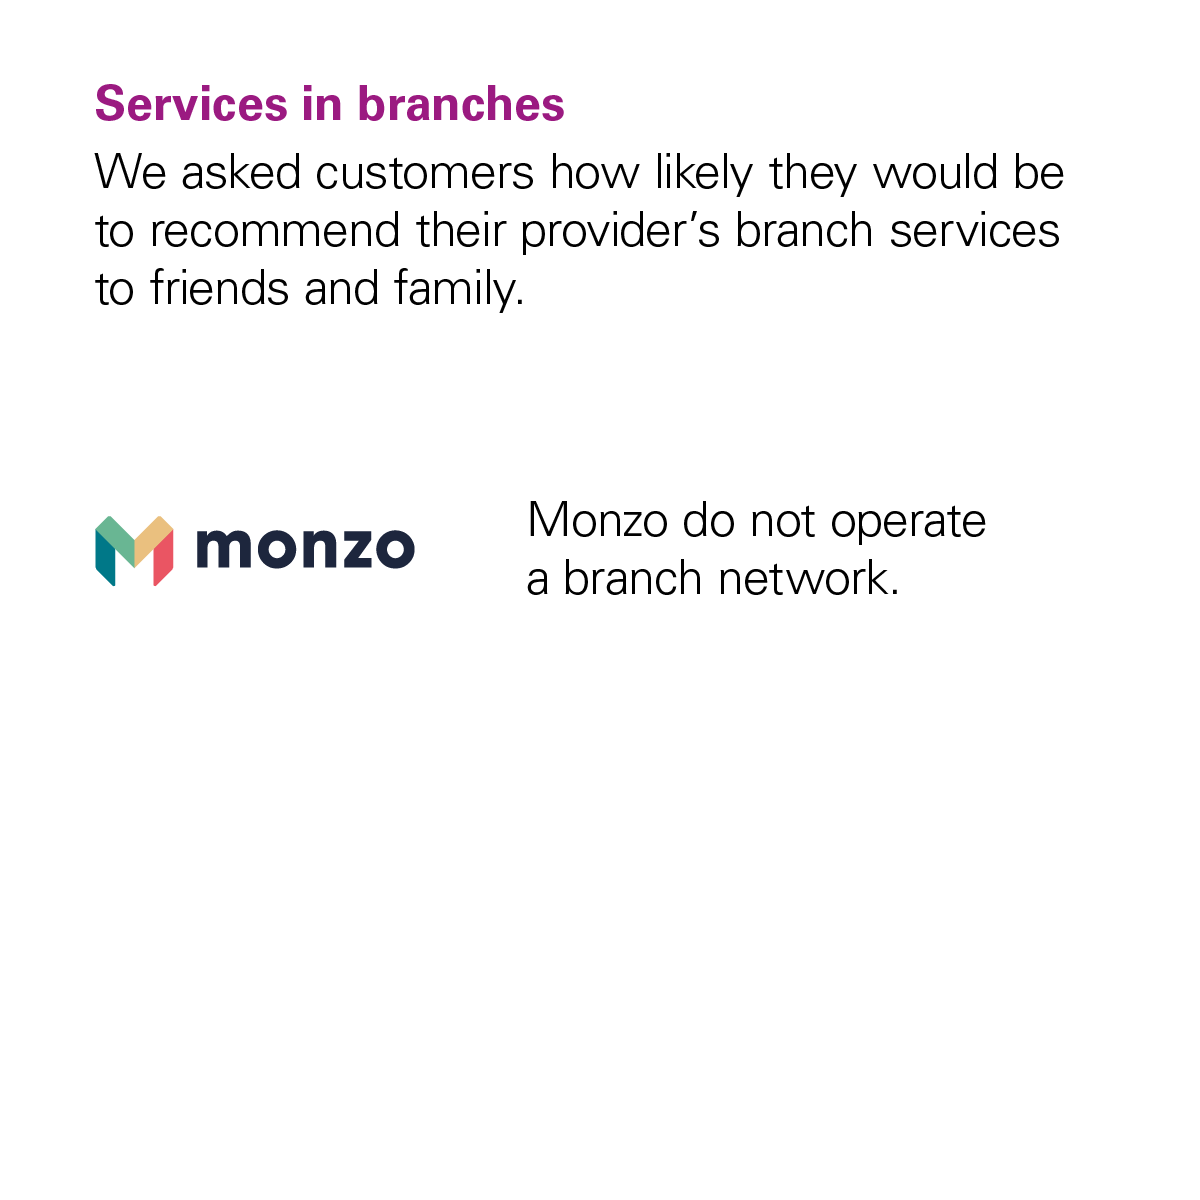 Image showing that Monzo didn't receive a score from the CMA for the Services in Branches category because Monzo doesn't have any branches.